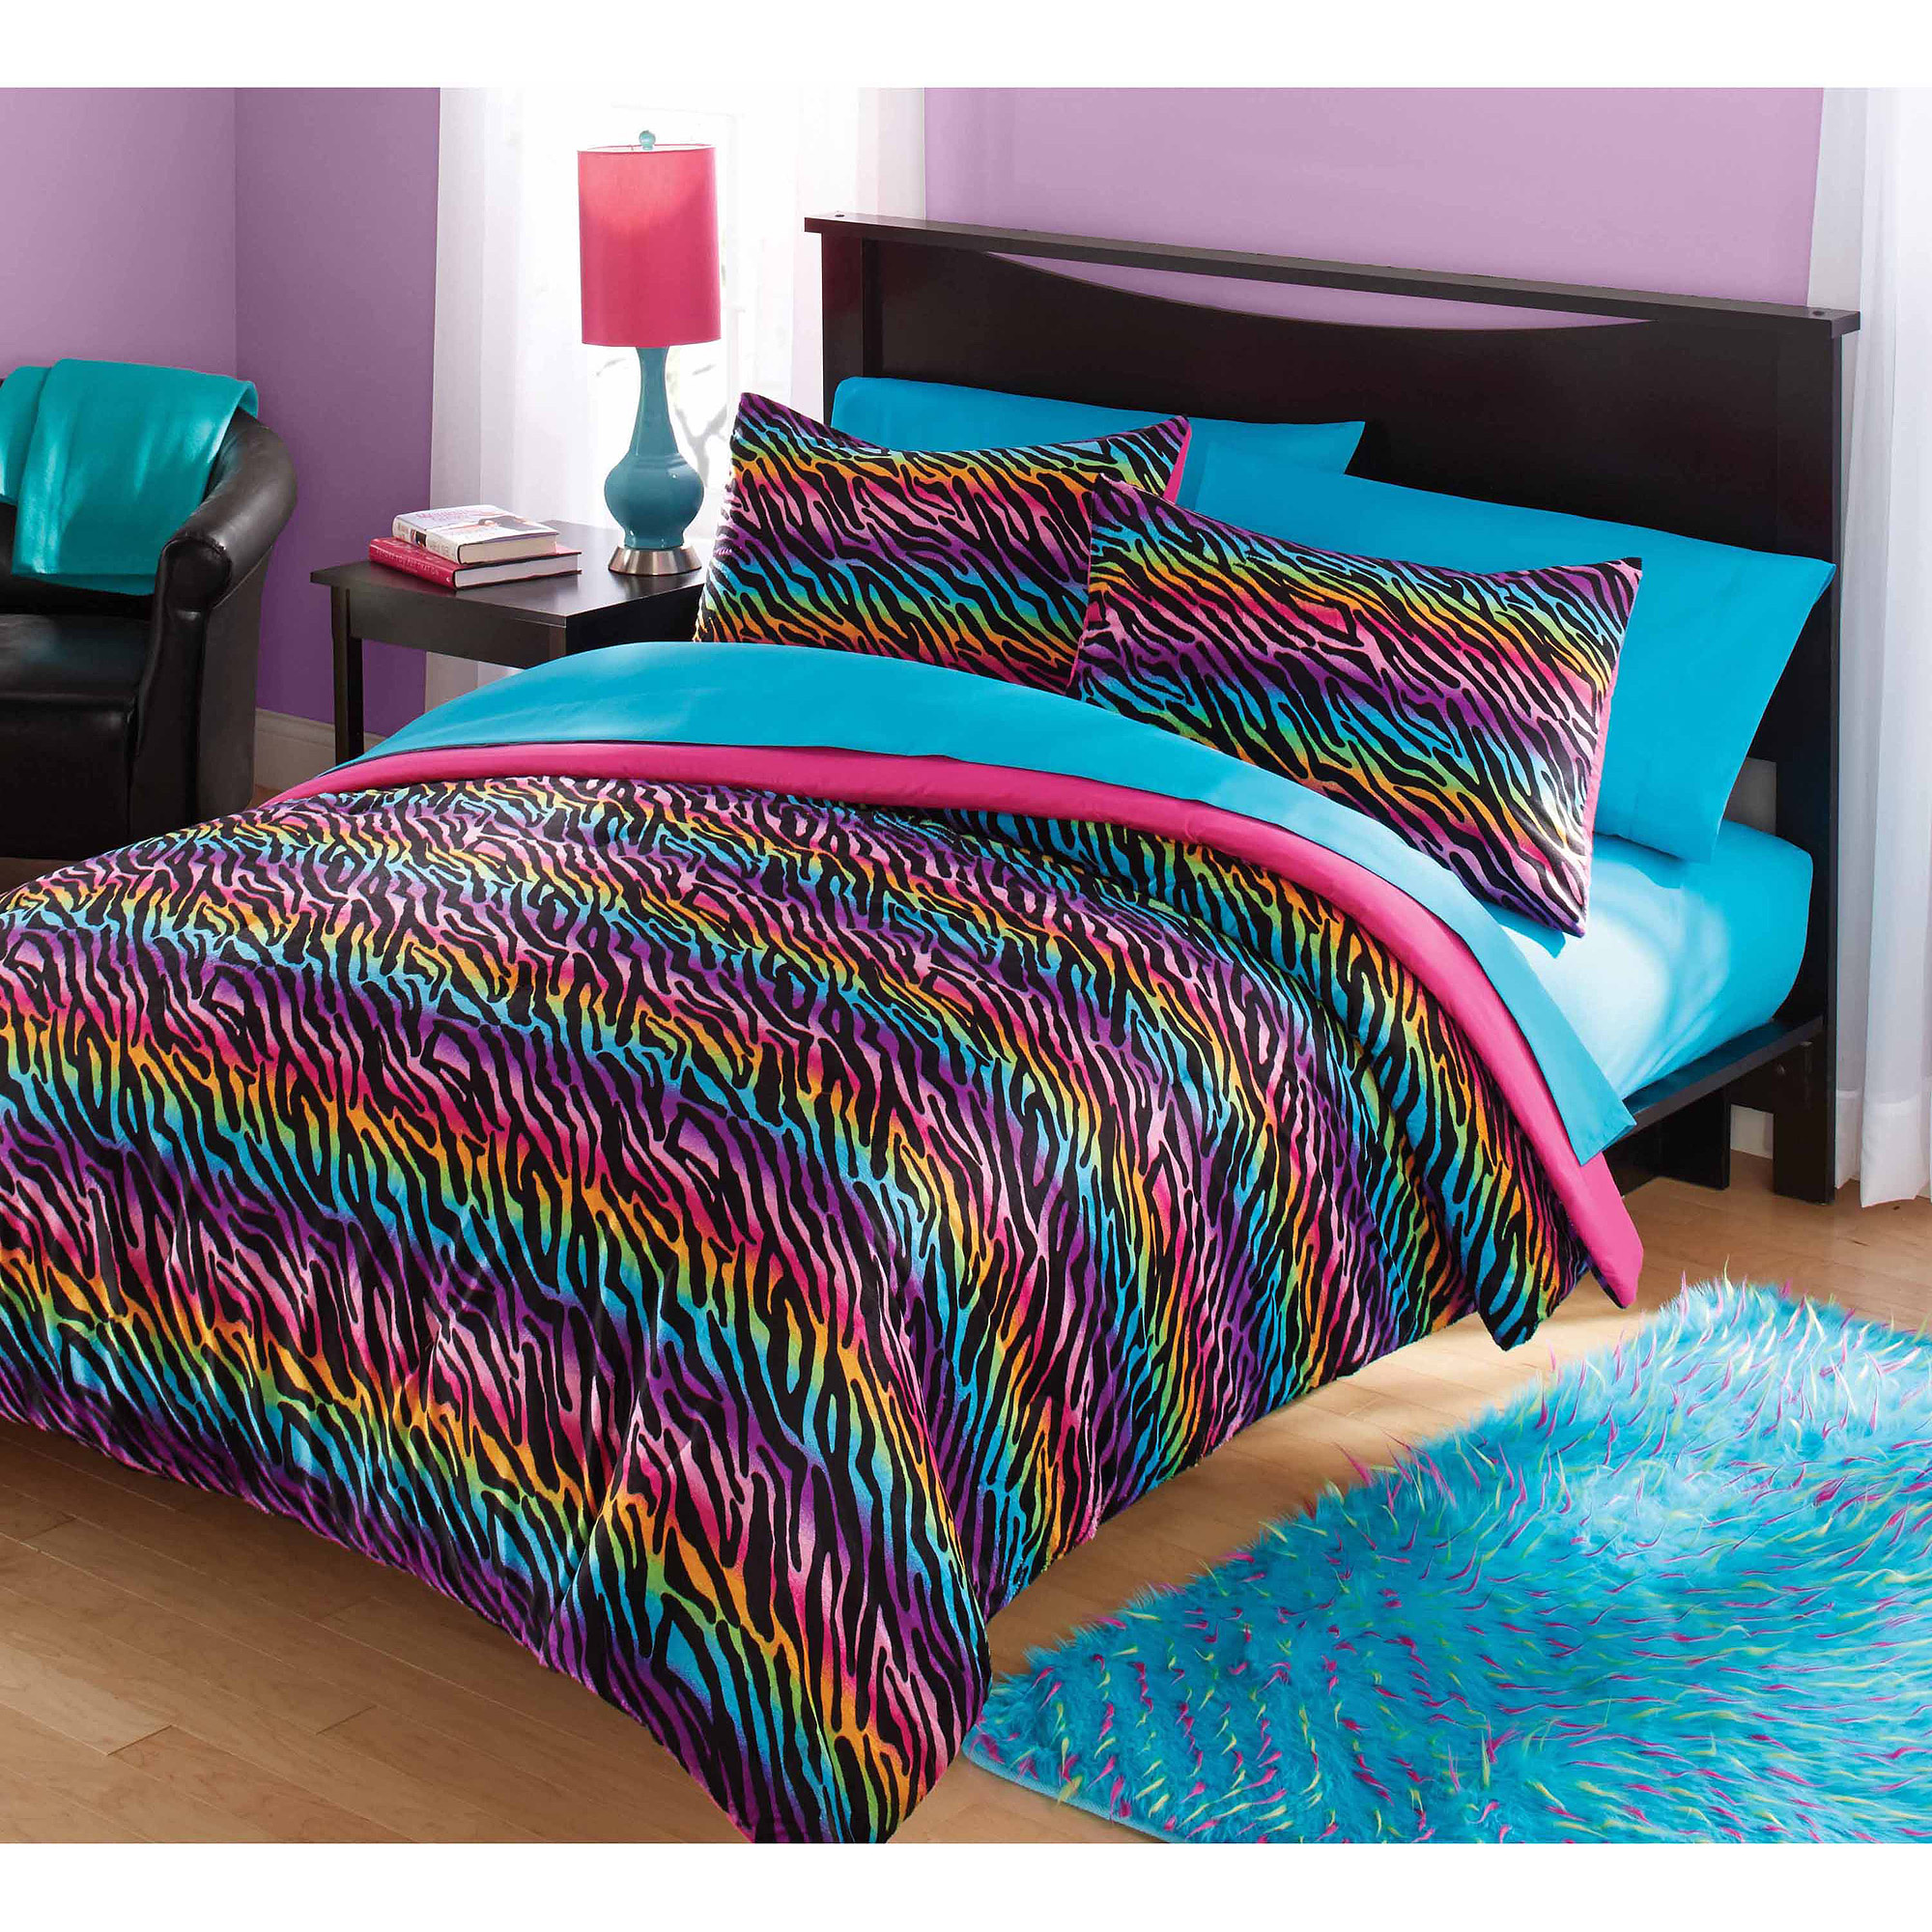 Queen Bed Sheet Set Walmart